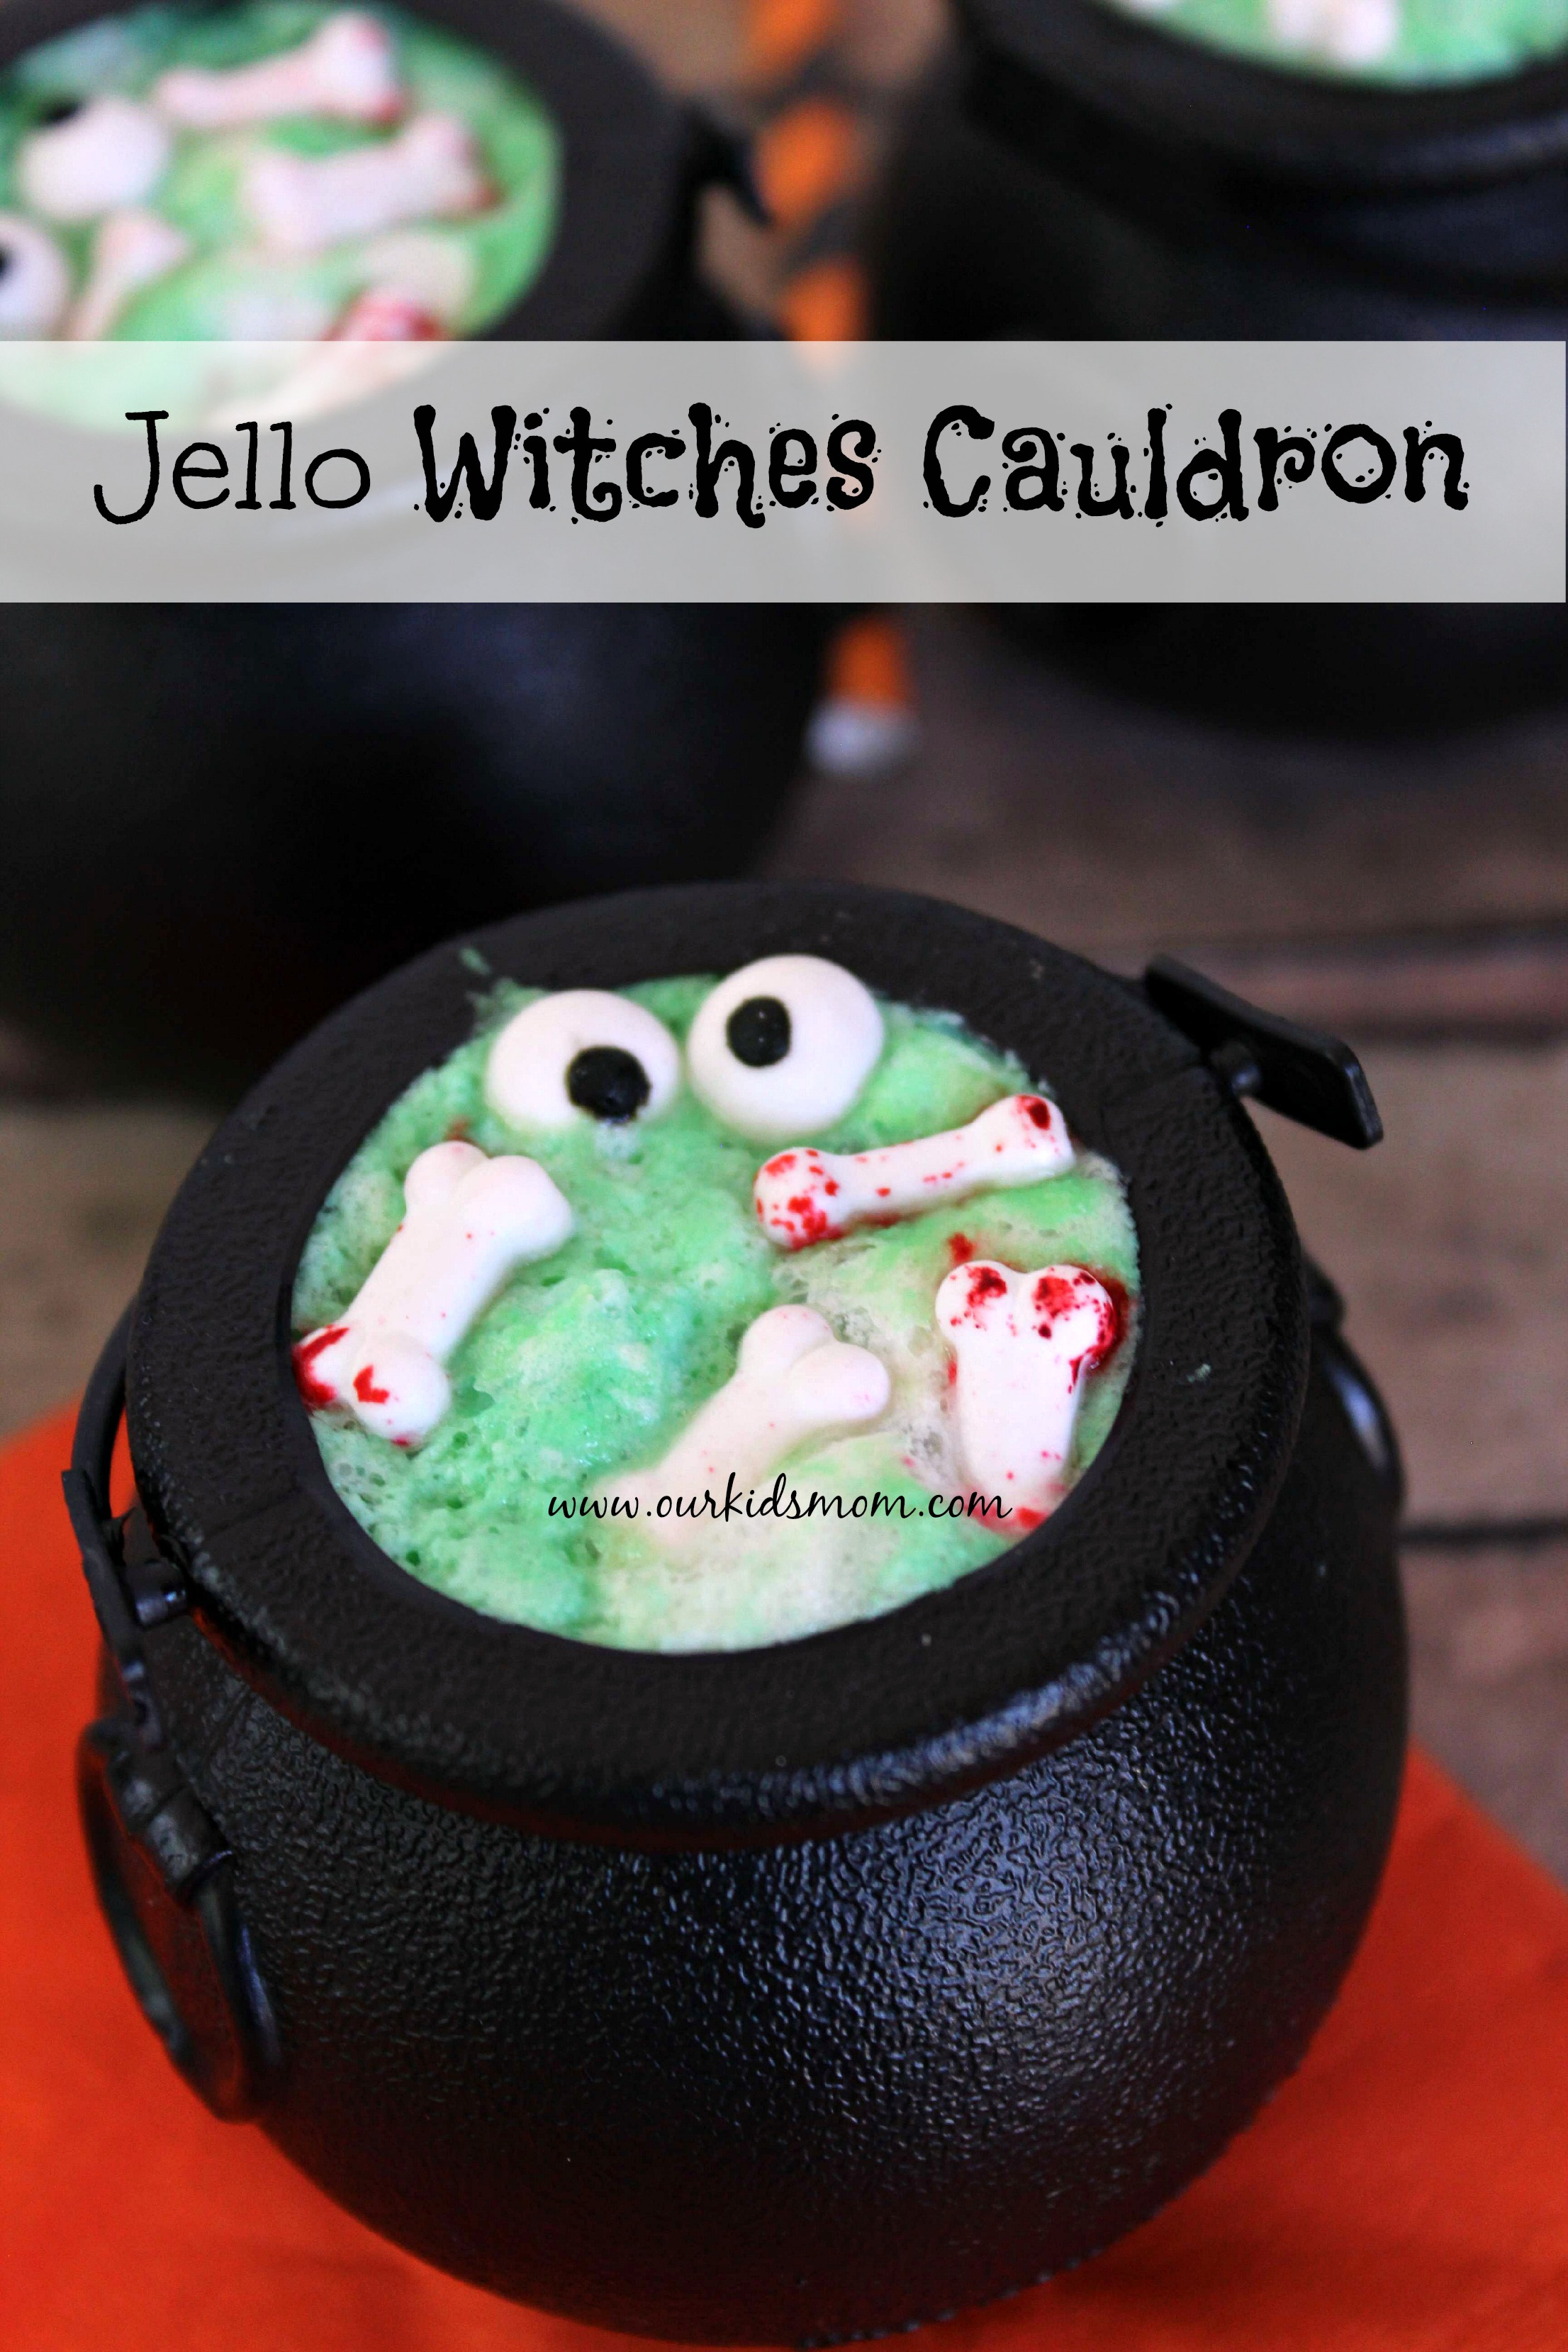 Jello Witches Cauldron